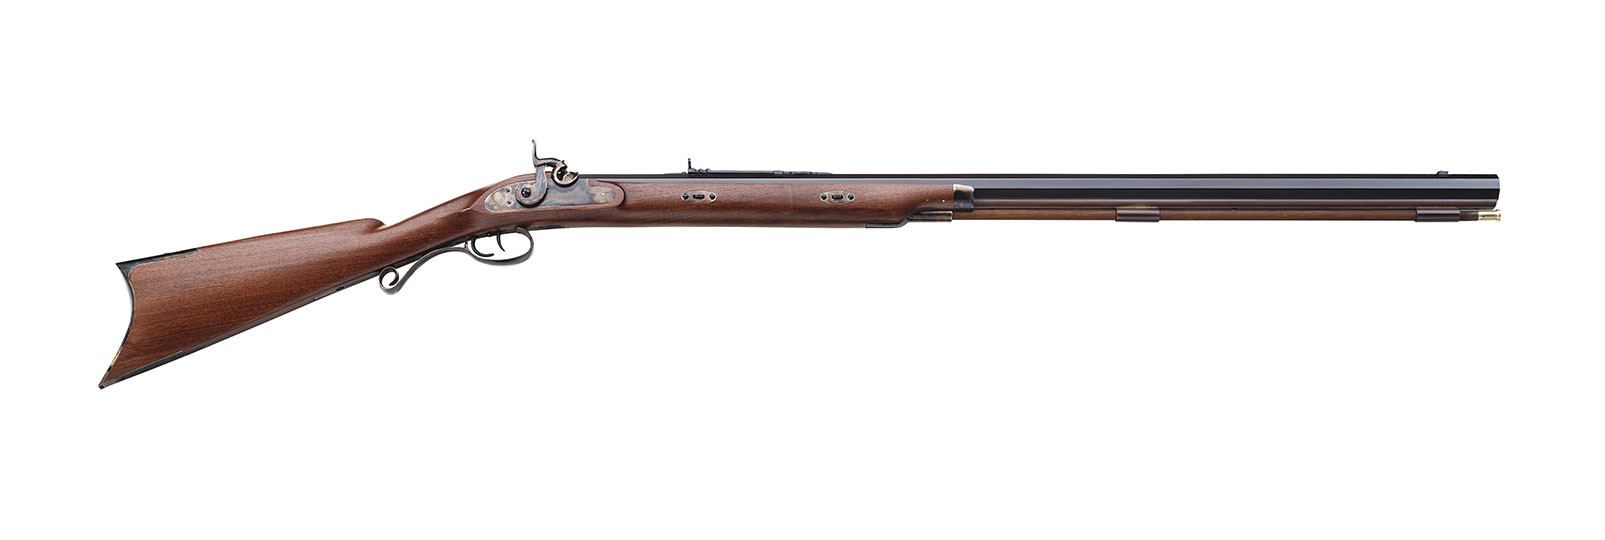 "Rocky Mountain Hawken ""walnut"" Rifle"